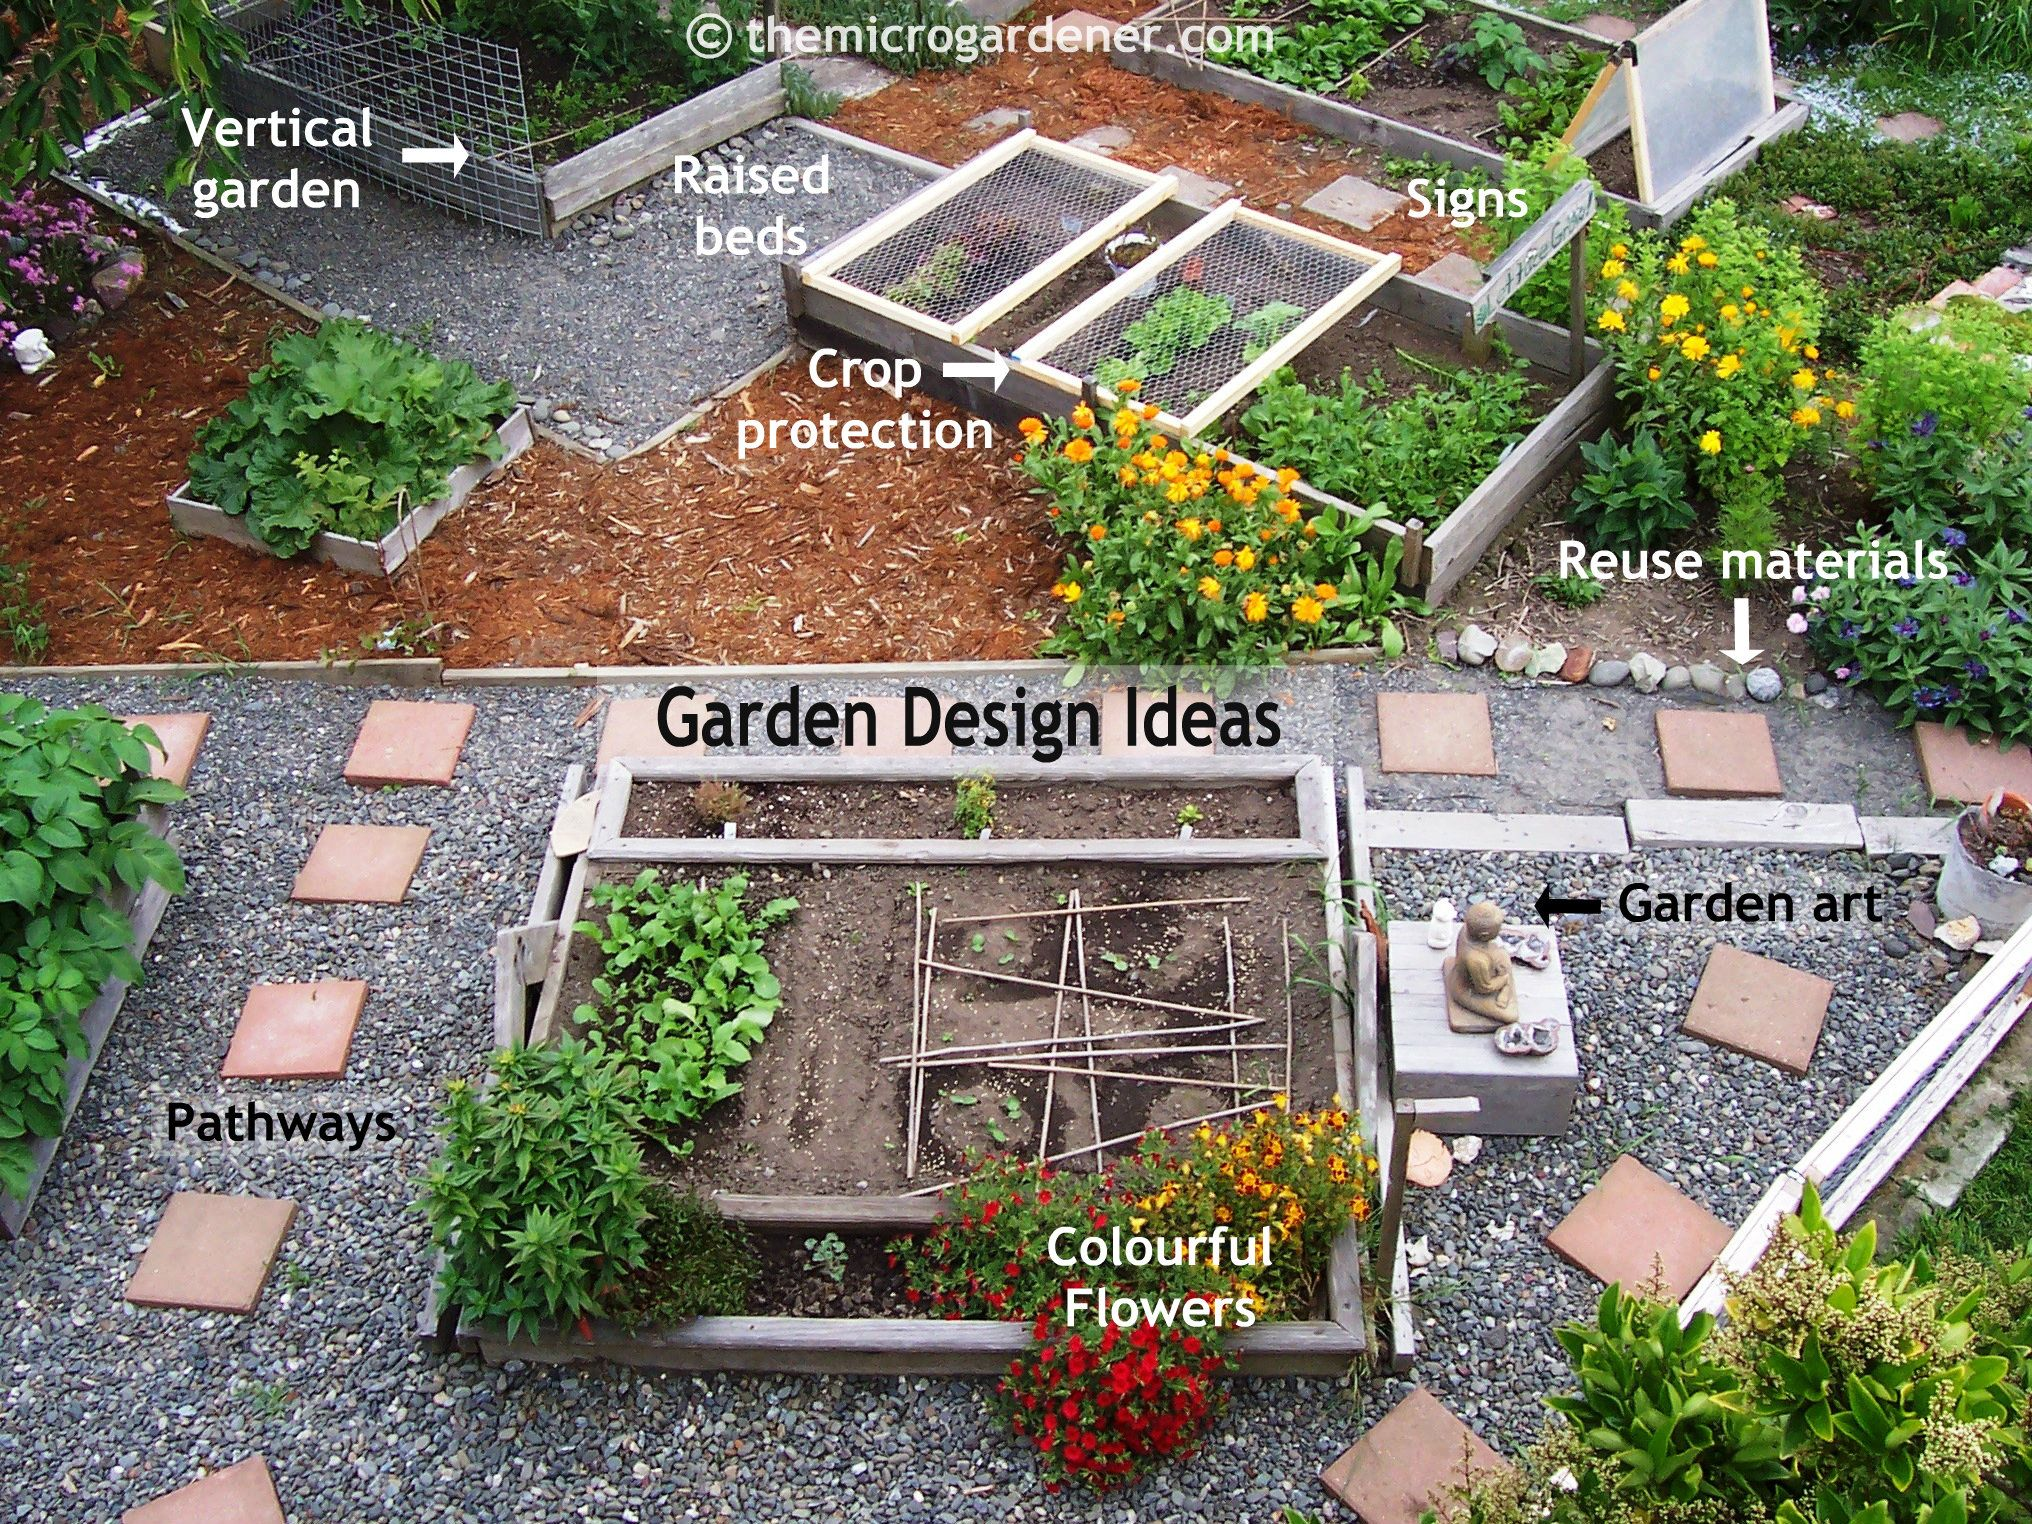 Garden Design Ideas 19 backyards that will blow your mind Find This Pin And More On Small Garden Design Ideas